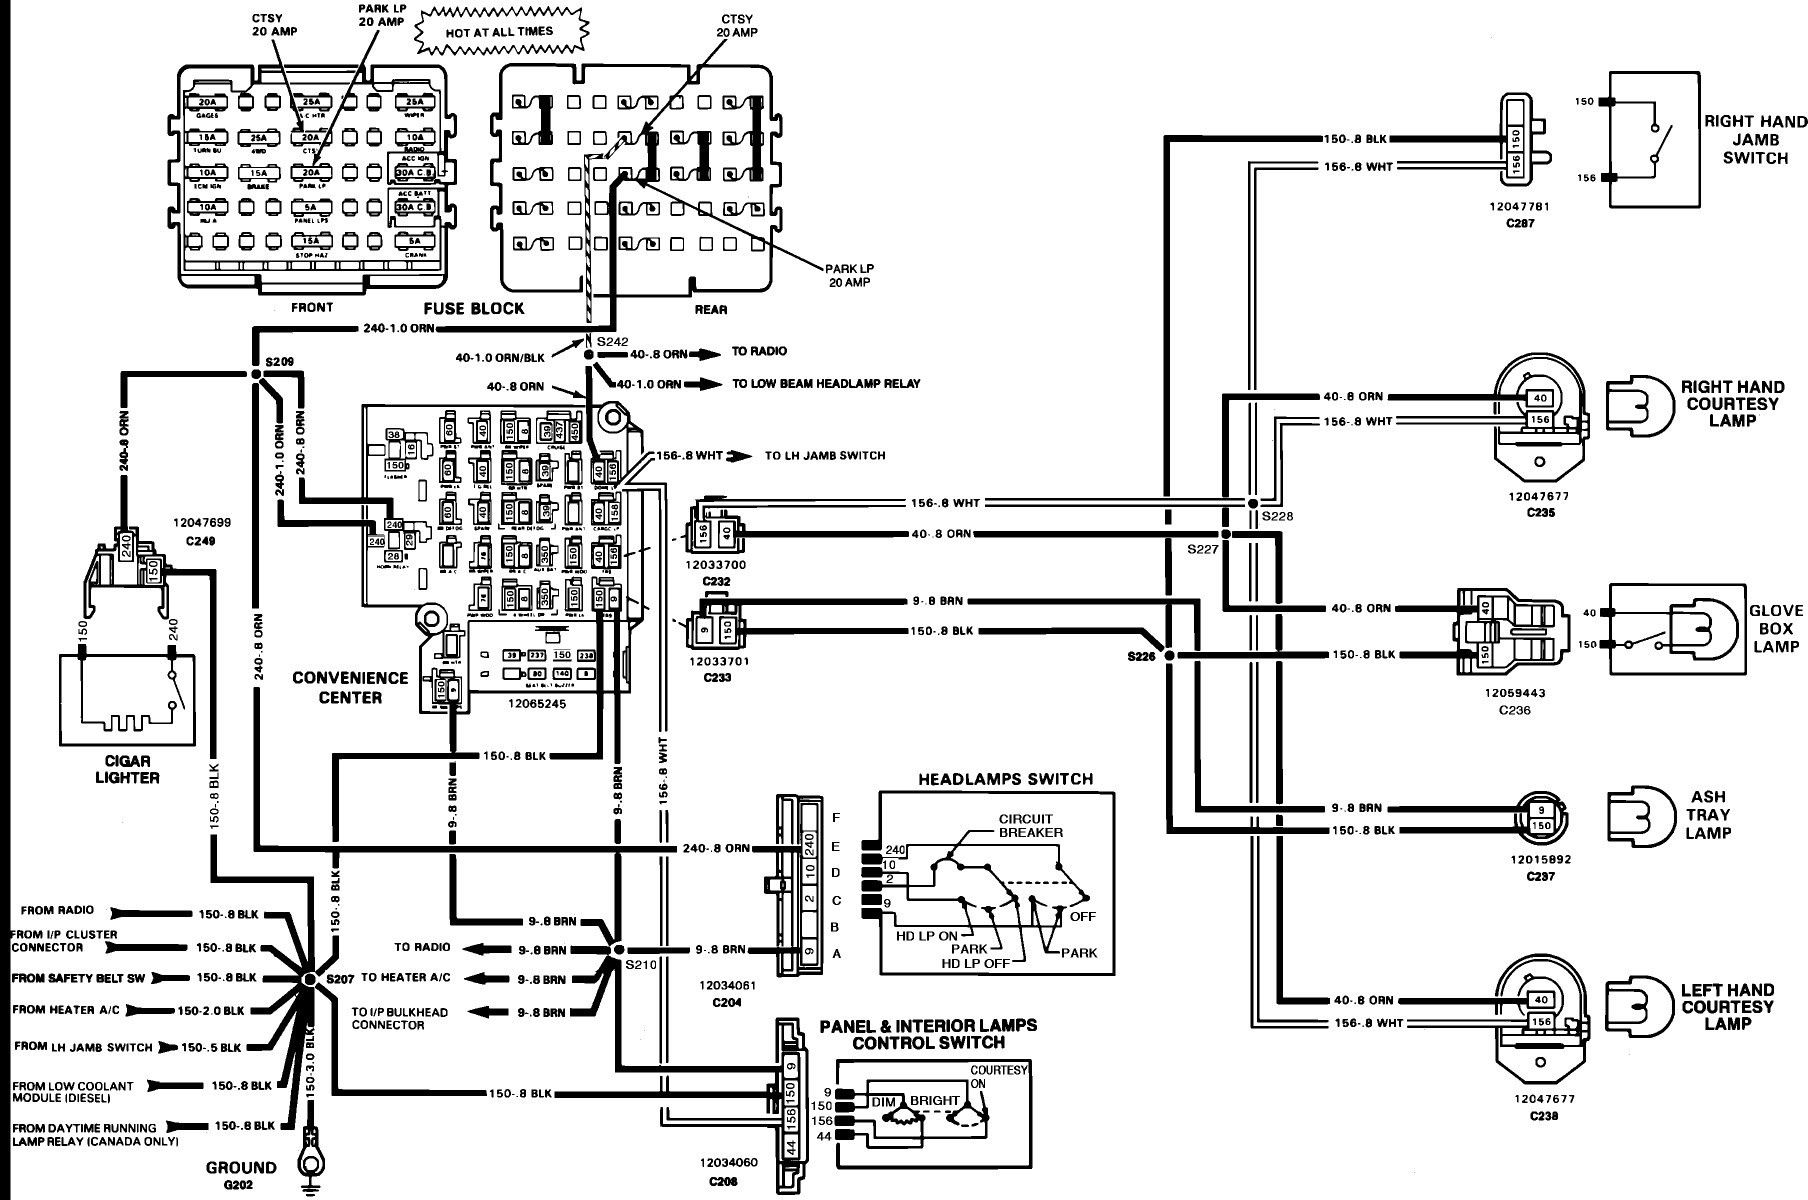 Chevy truck wiring diagram my